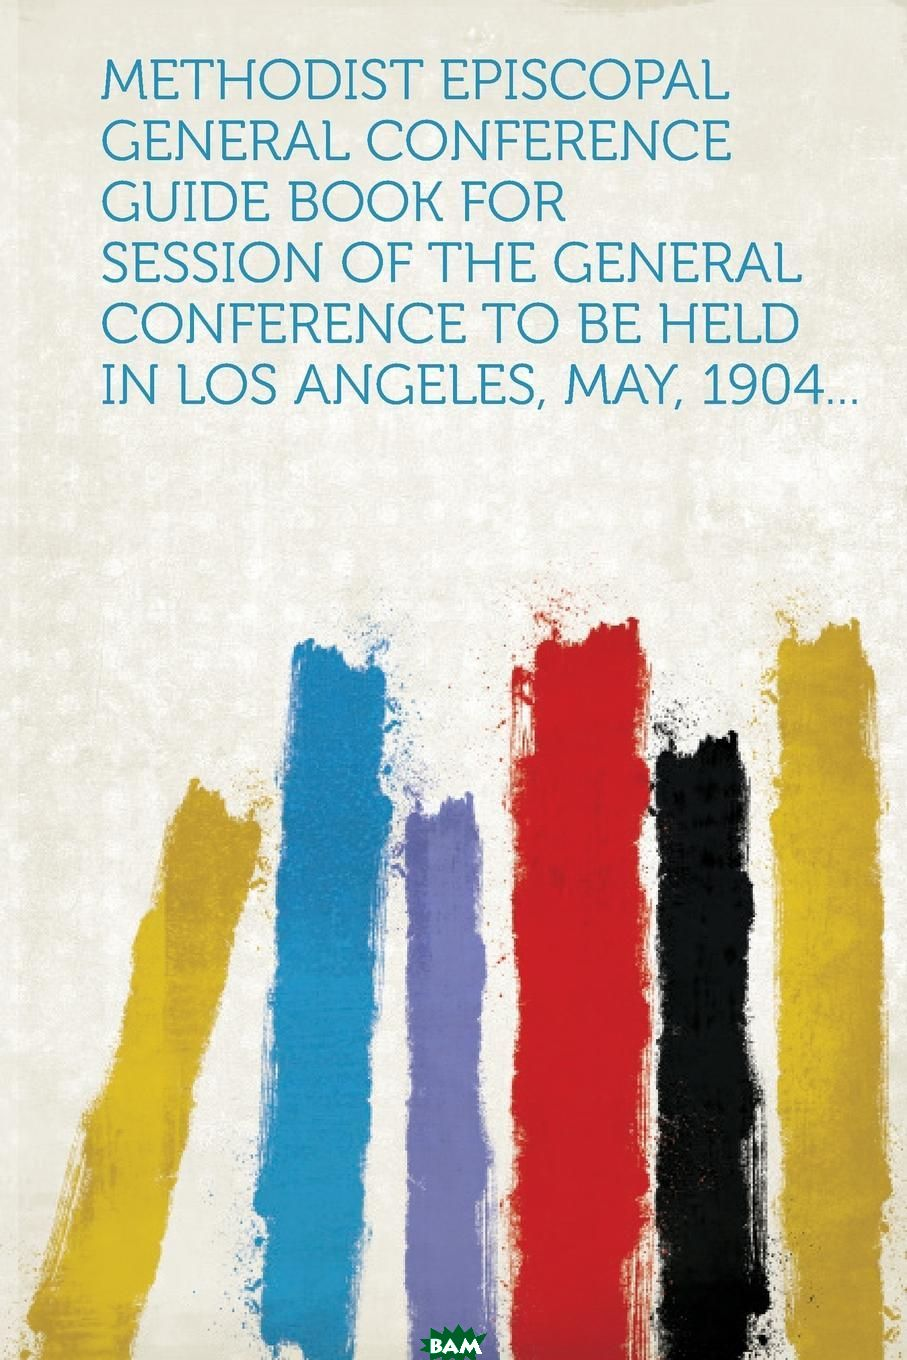 Купить Methodist Episcopal General Conference Guide Book for Session of the General Conference to Be Held in Los Angeles, May, 1904..., 9781314978513